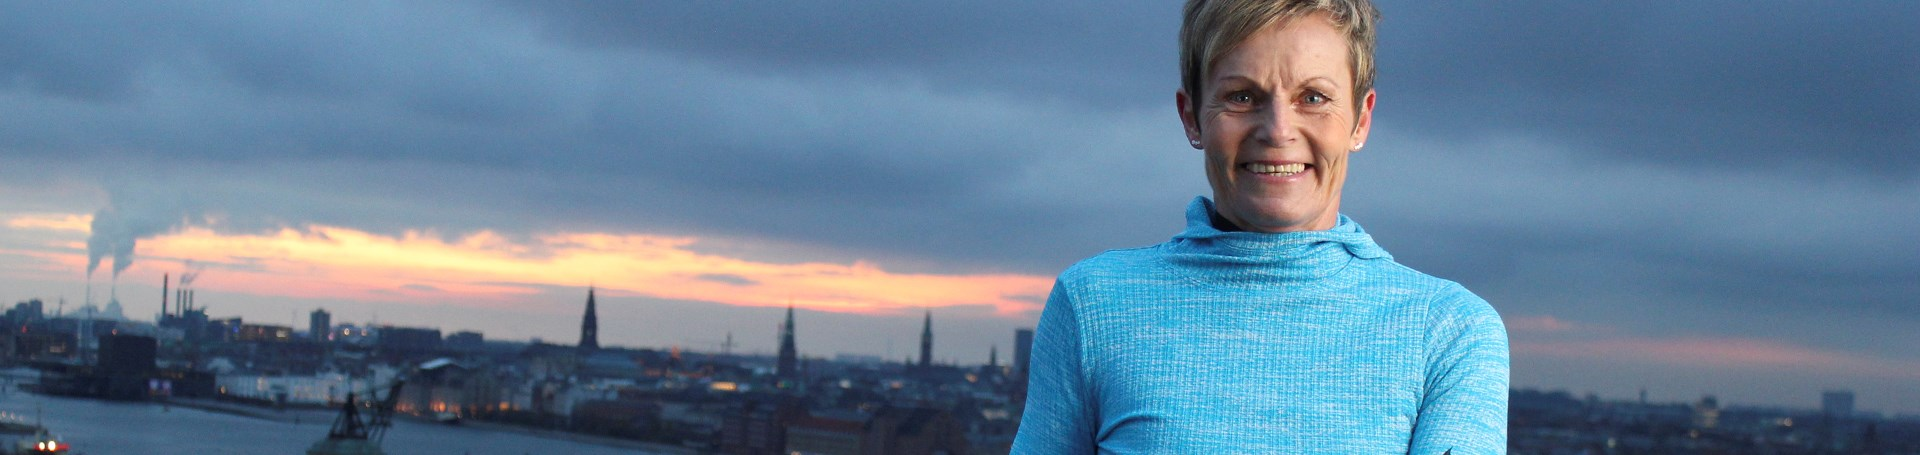 VP_VP_ALL_1920x455_1805_Pernille_Svarre_Portrait_CityBackground.jpg